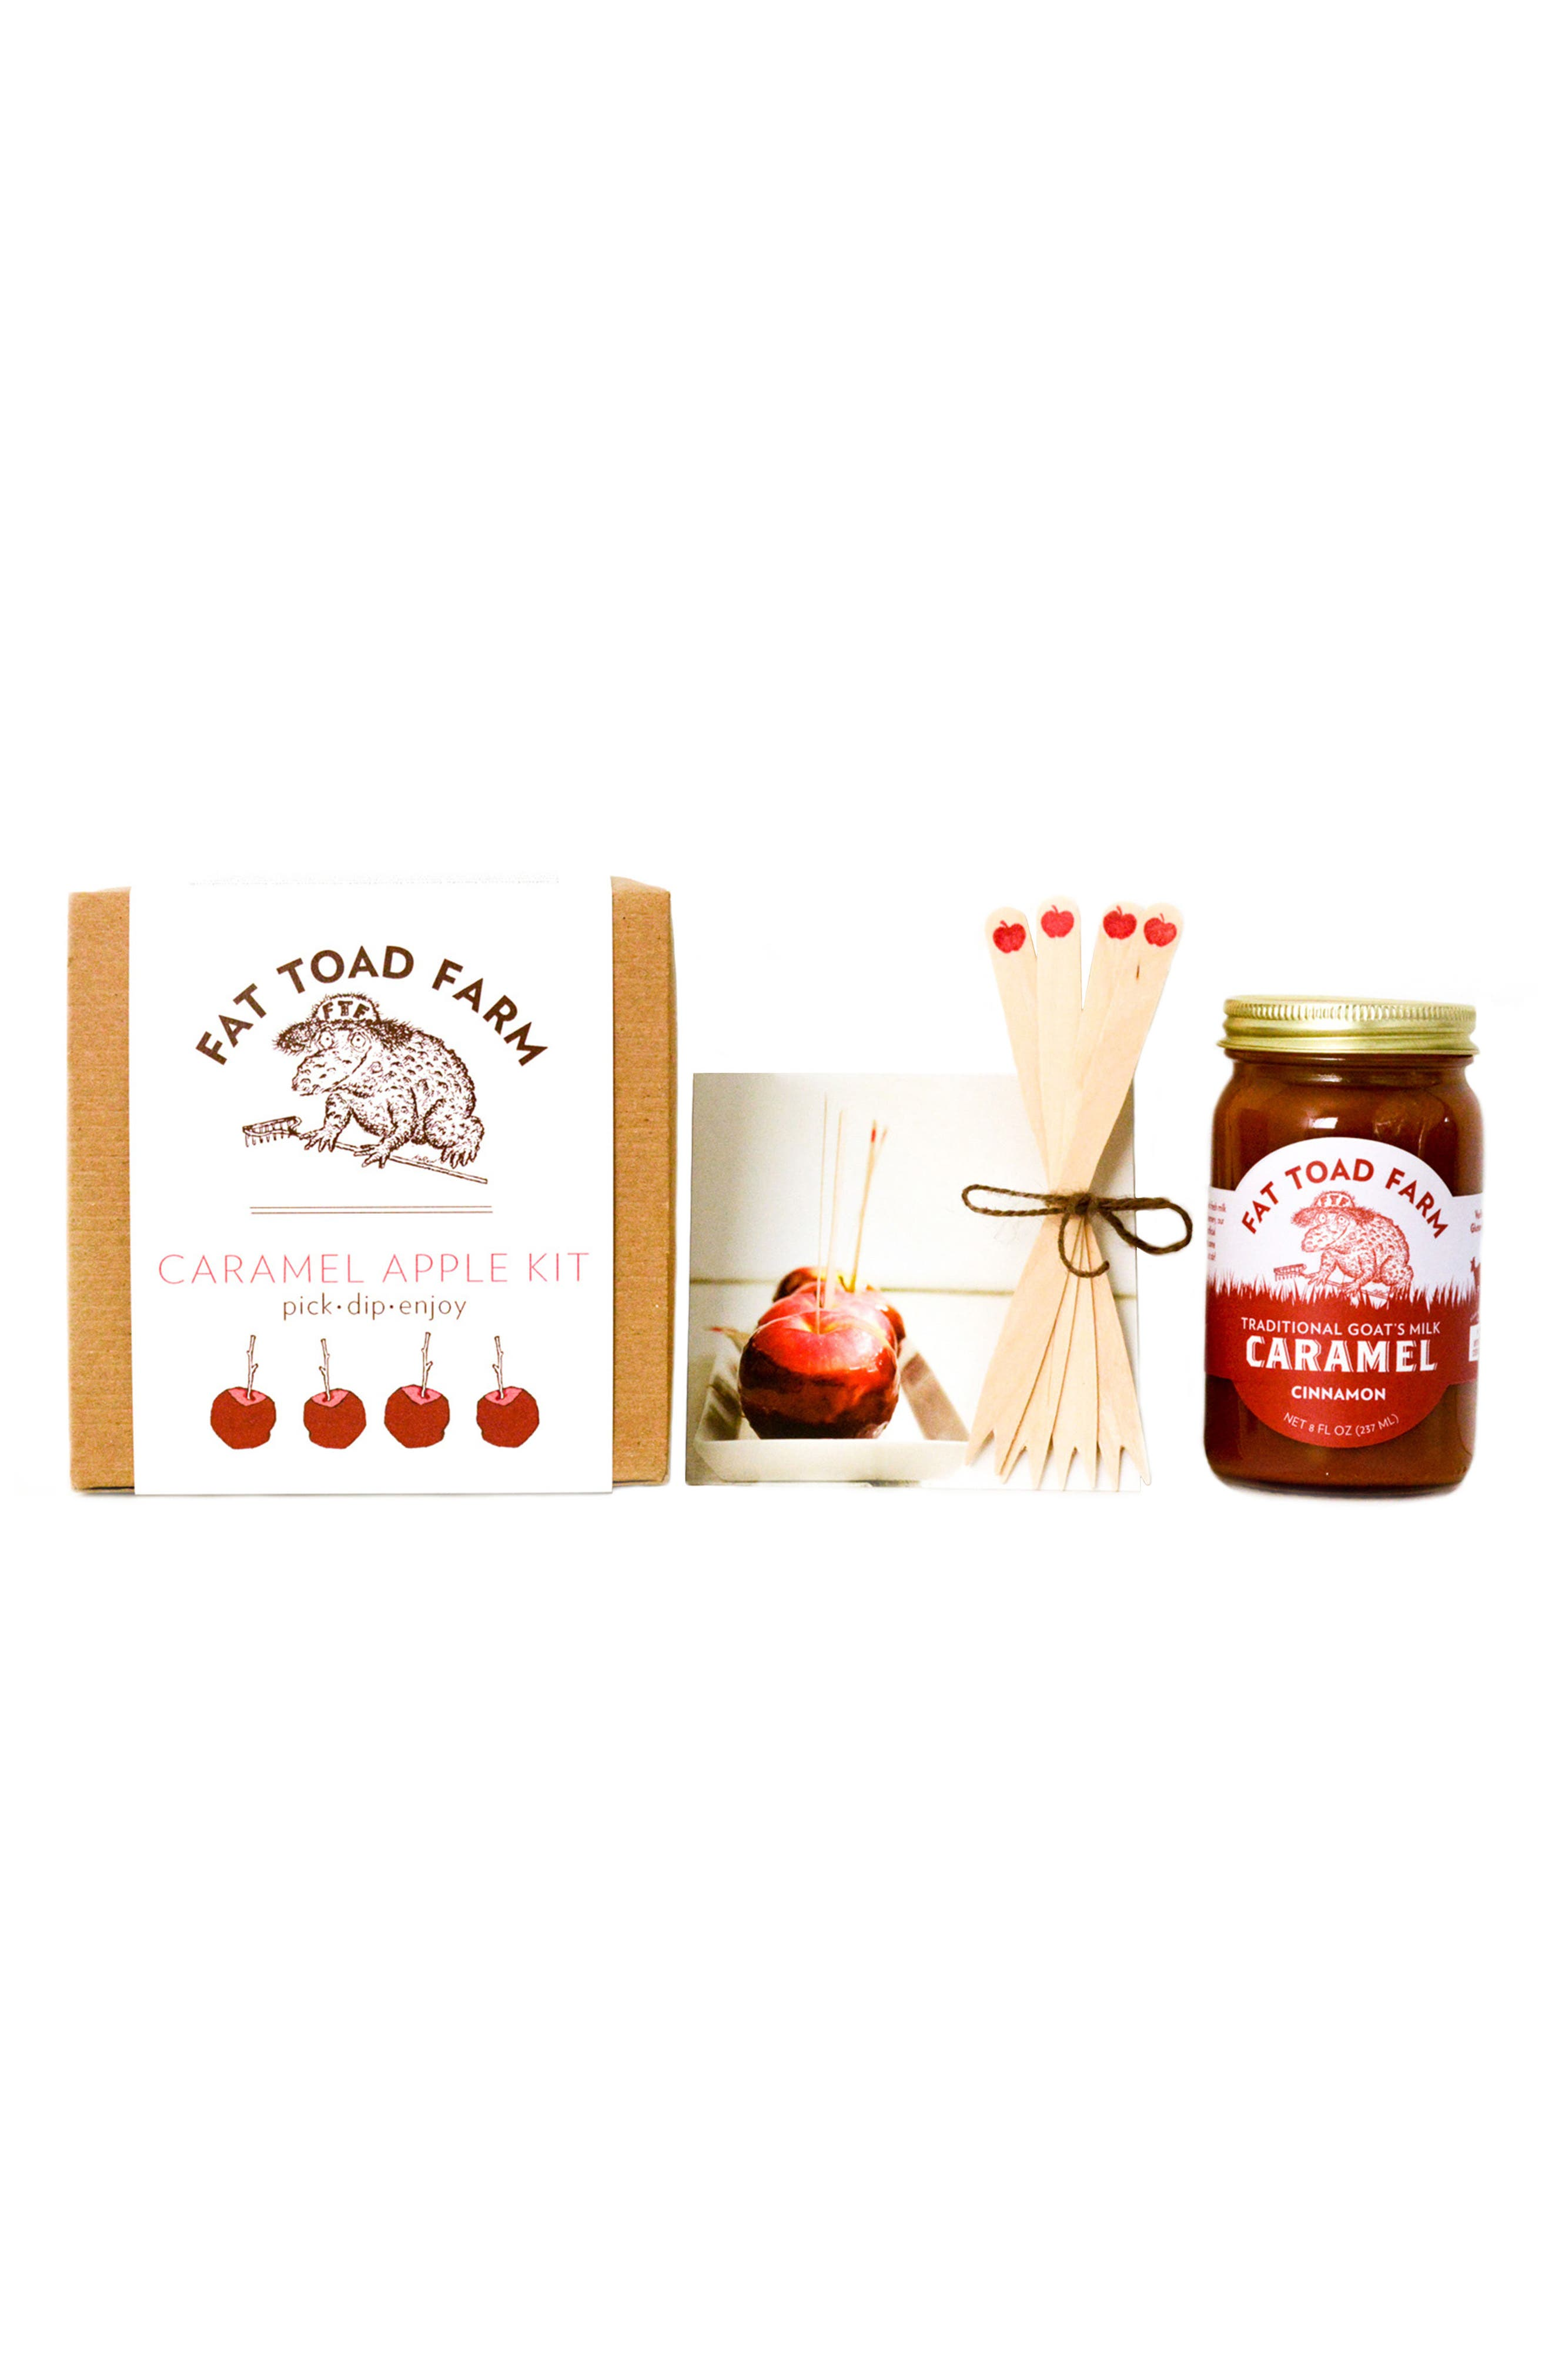 Alternate Image 1 Selected - Fat Toad Farm Caramel Apple Kit